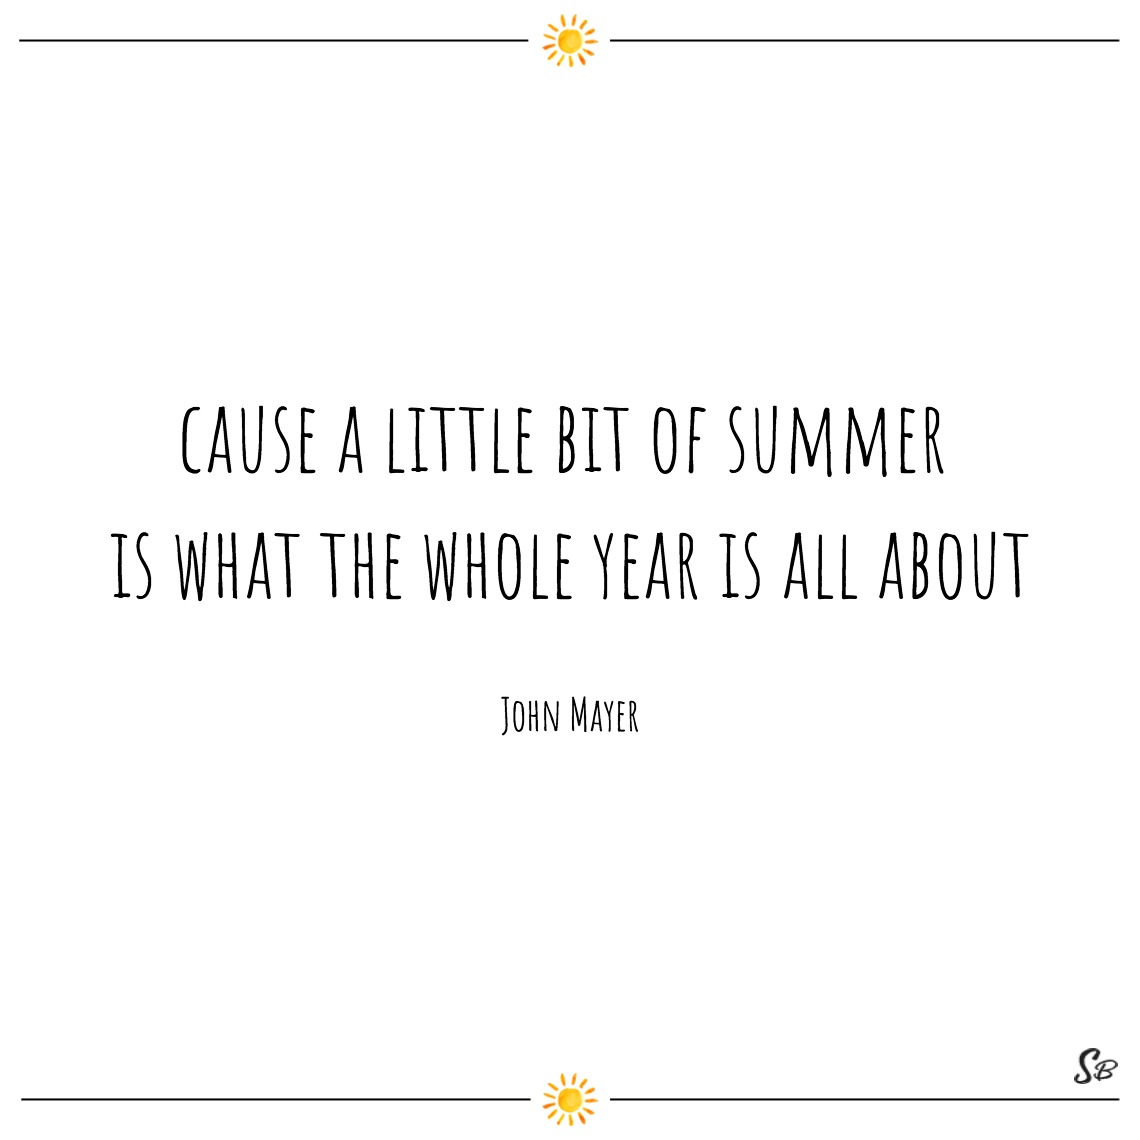 Cause a little bit of summer is what the whole year is all about john mayer summer quotes